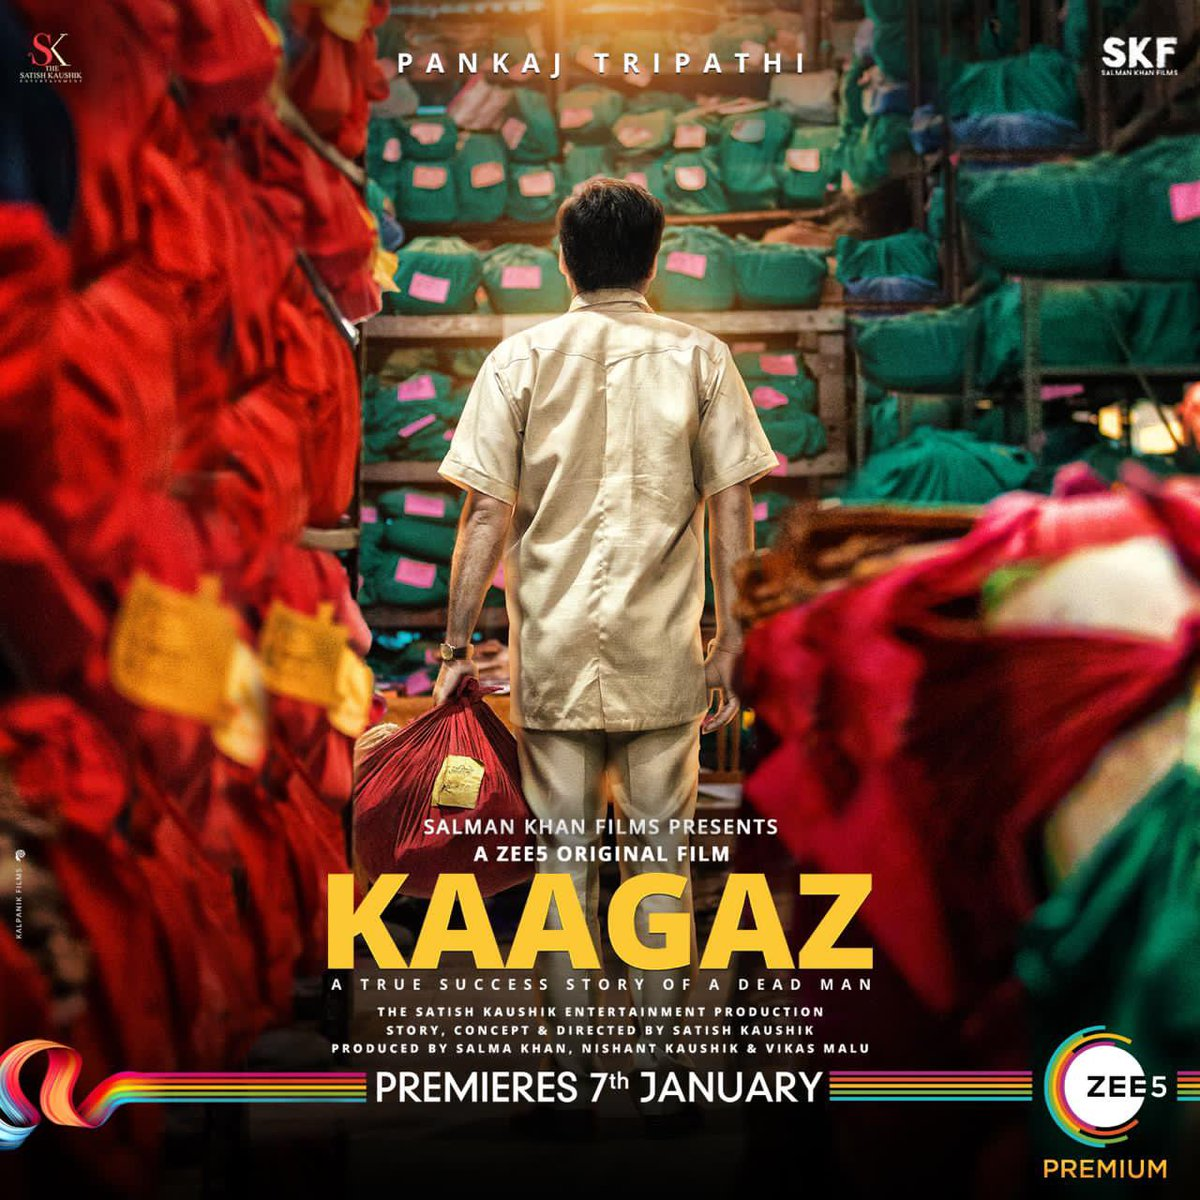 Kaagaz pe Lal Bihari ki kahaani hai badi atyachari. A true story, #Kaagaz premieres 7th January 2021. In select theatres, in UP. #ProofHainKya  @tripathiipankaj @satishkaushik2 @gajjarmonal @theamarupadhay @Nishantkaushikk @ZeeStudios_ @shashankhandelwal02 @anksumads @ZEE5Premium